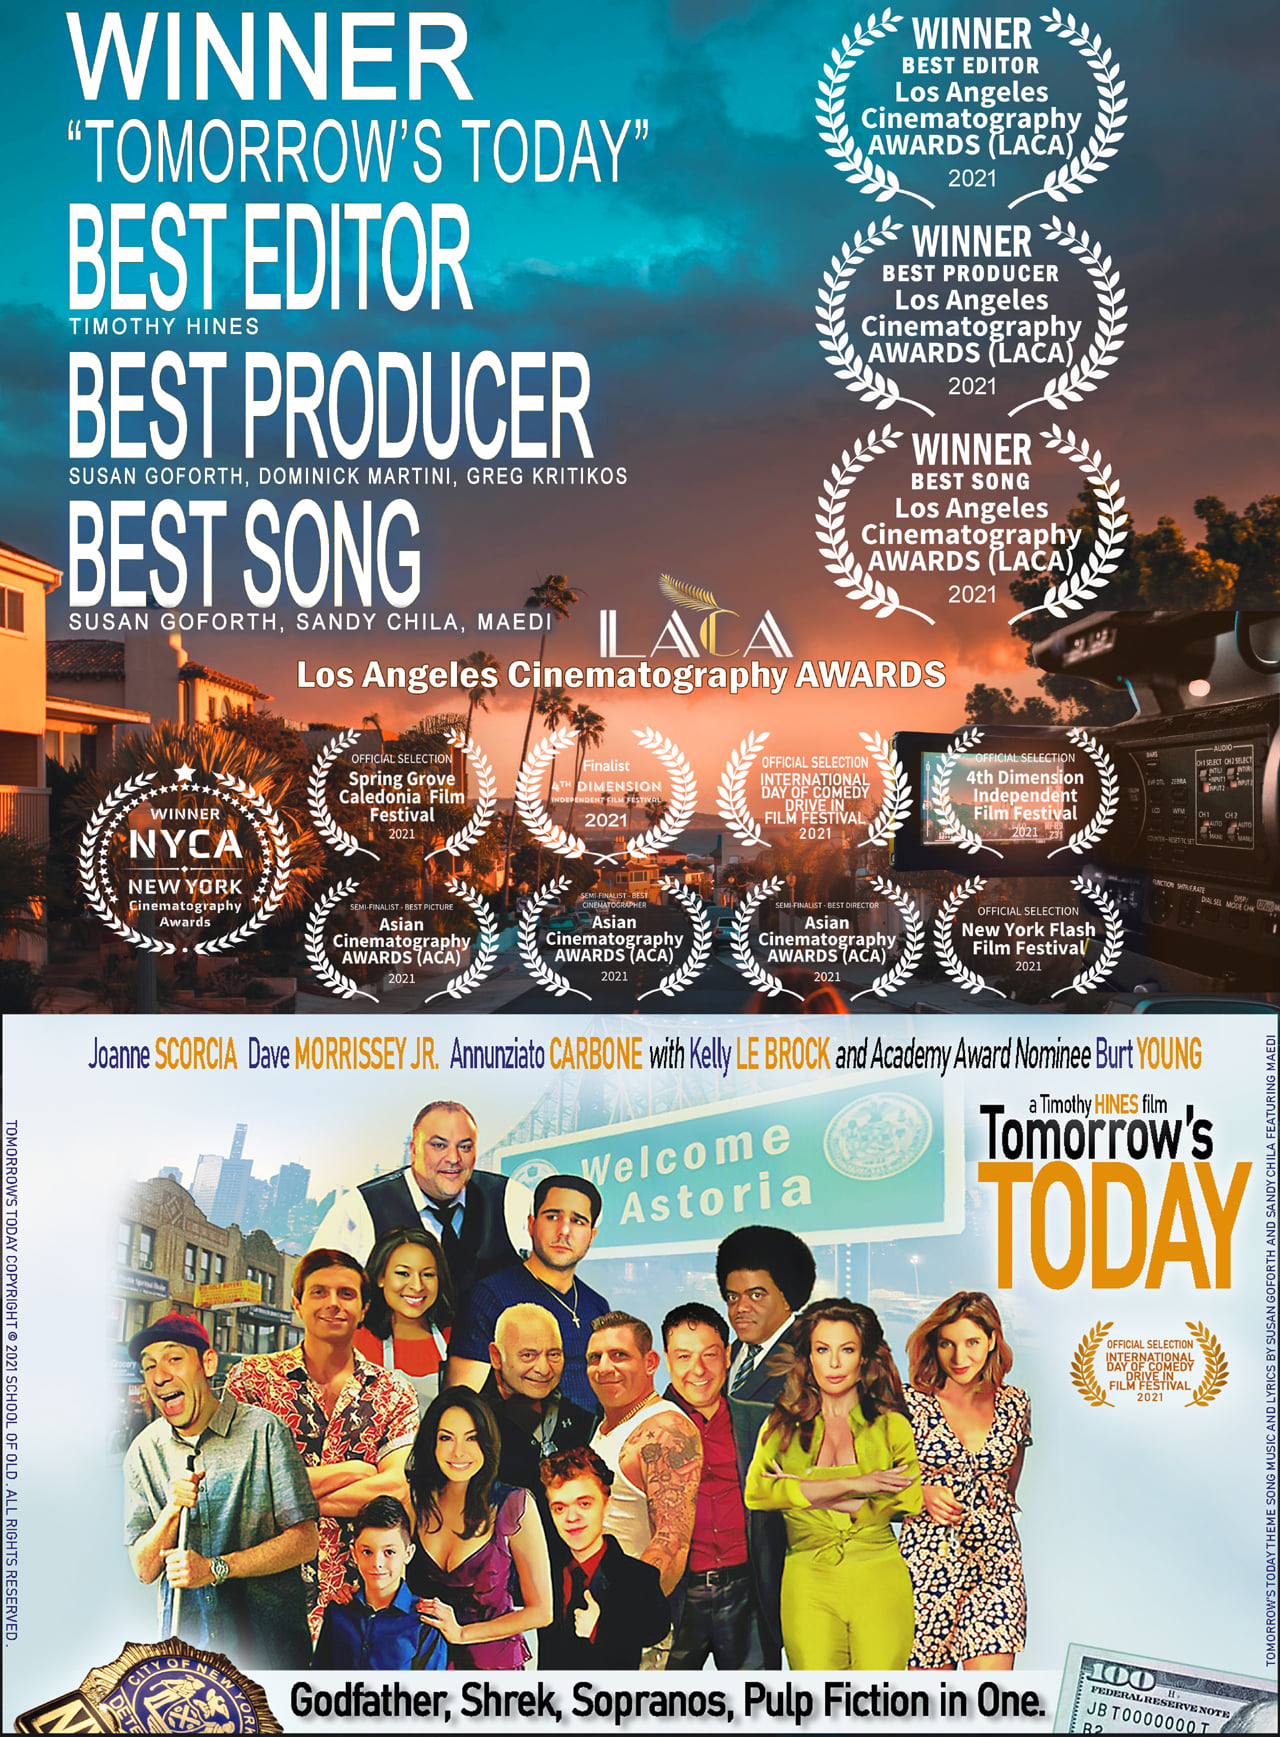 """Timothy Hines' """"Tomorrow's Today"""" with Kelly Le Brock and Burt Young, picks up 3 Wins at the Los Angeles Cinematography Awards"""